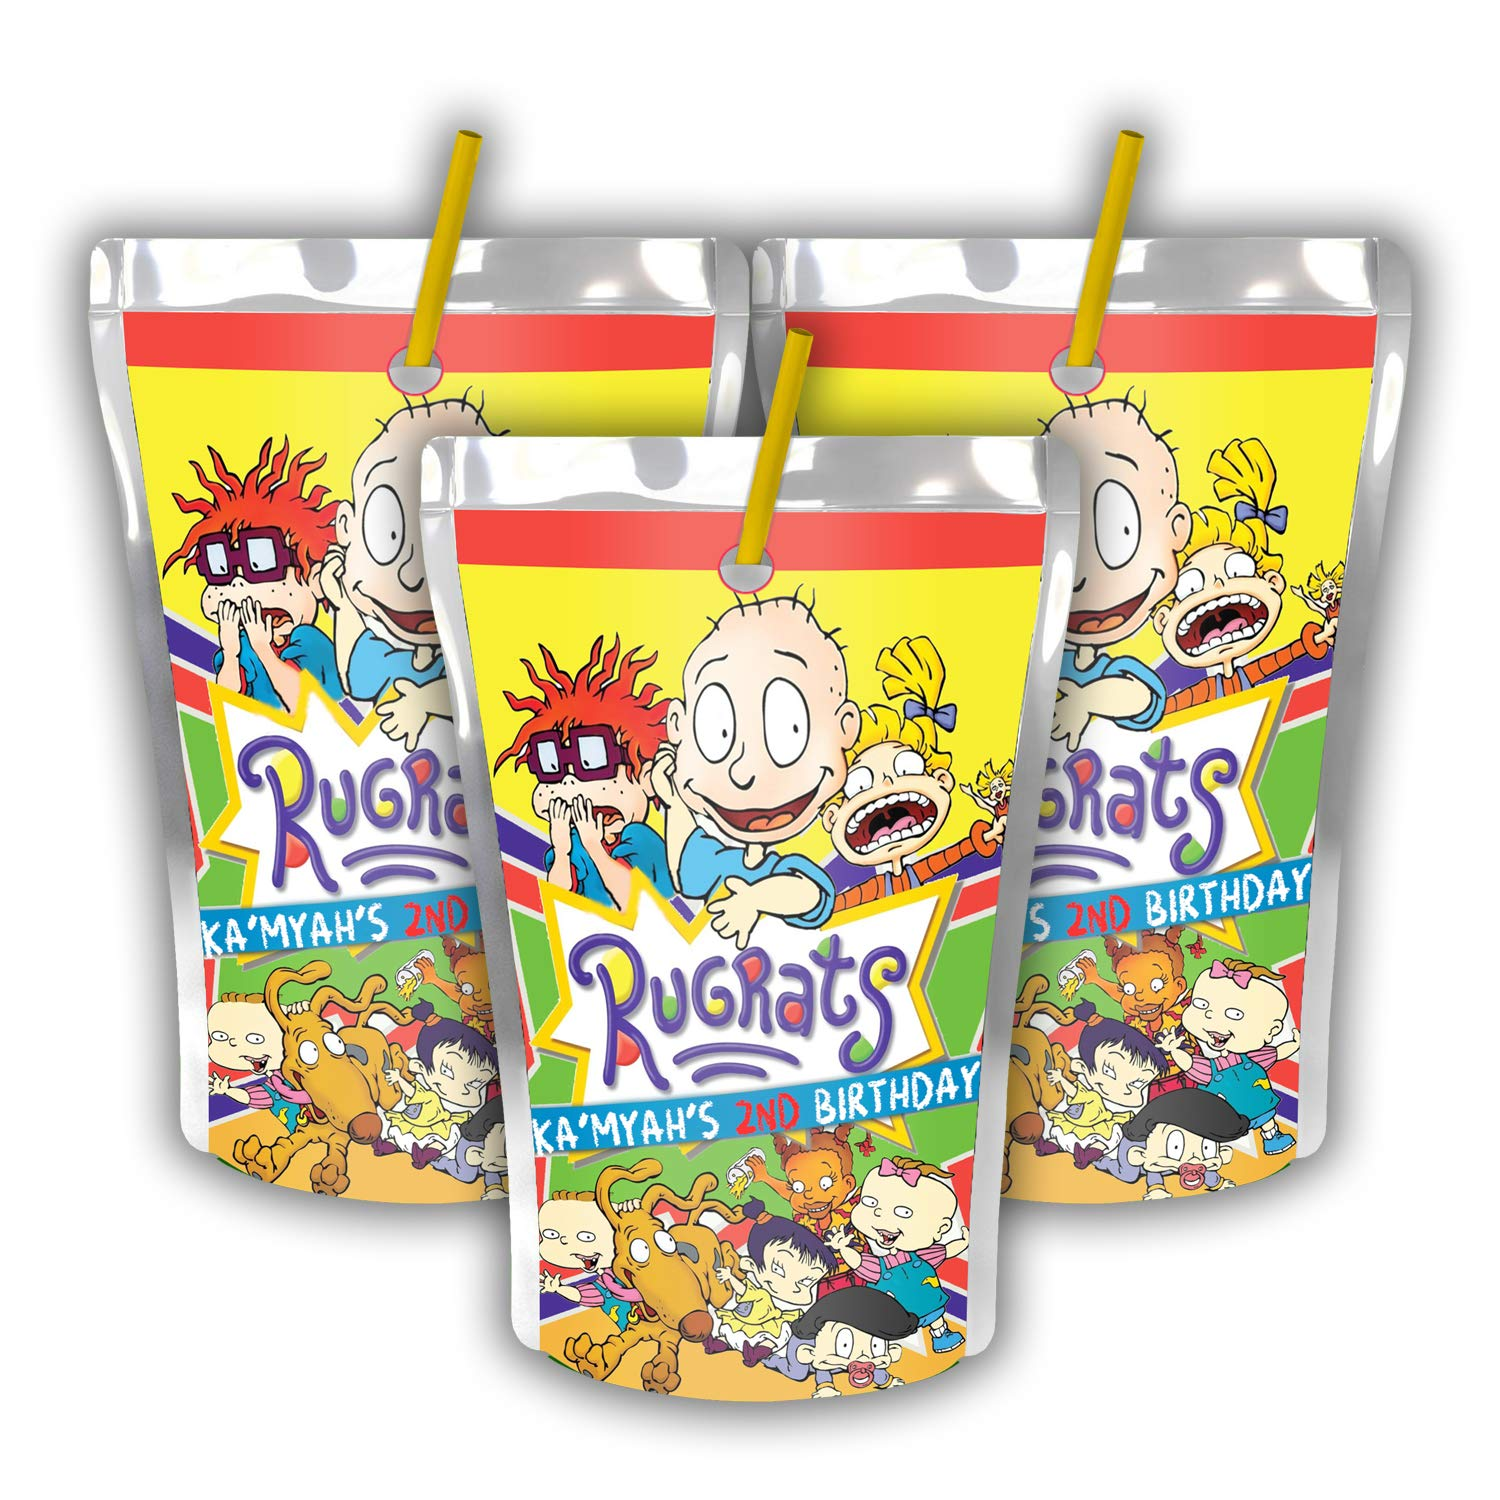 Rugrats Party Supplies Unique Birthday Party Ideas And Themes